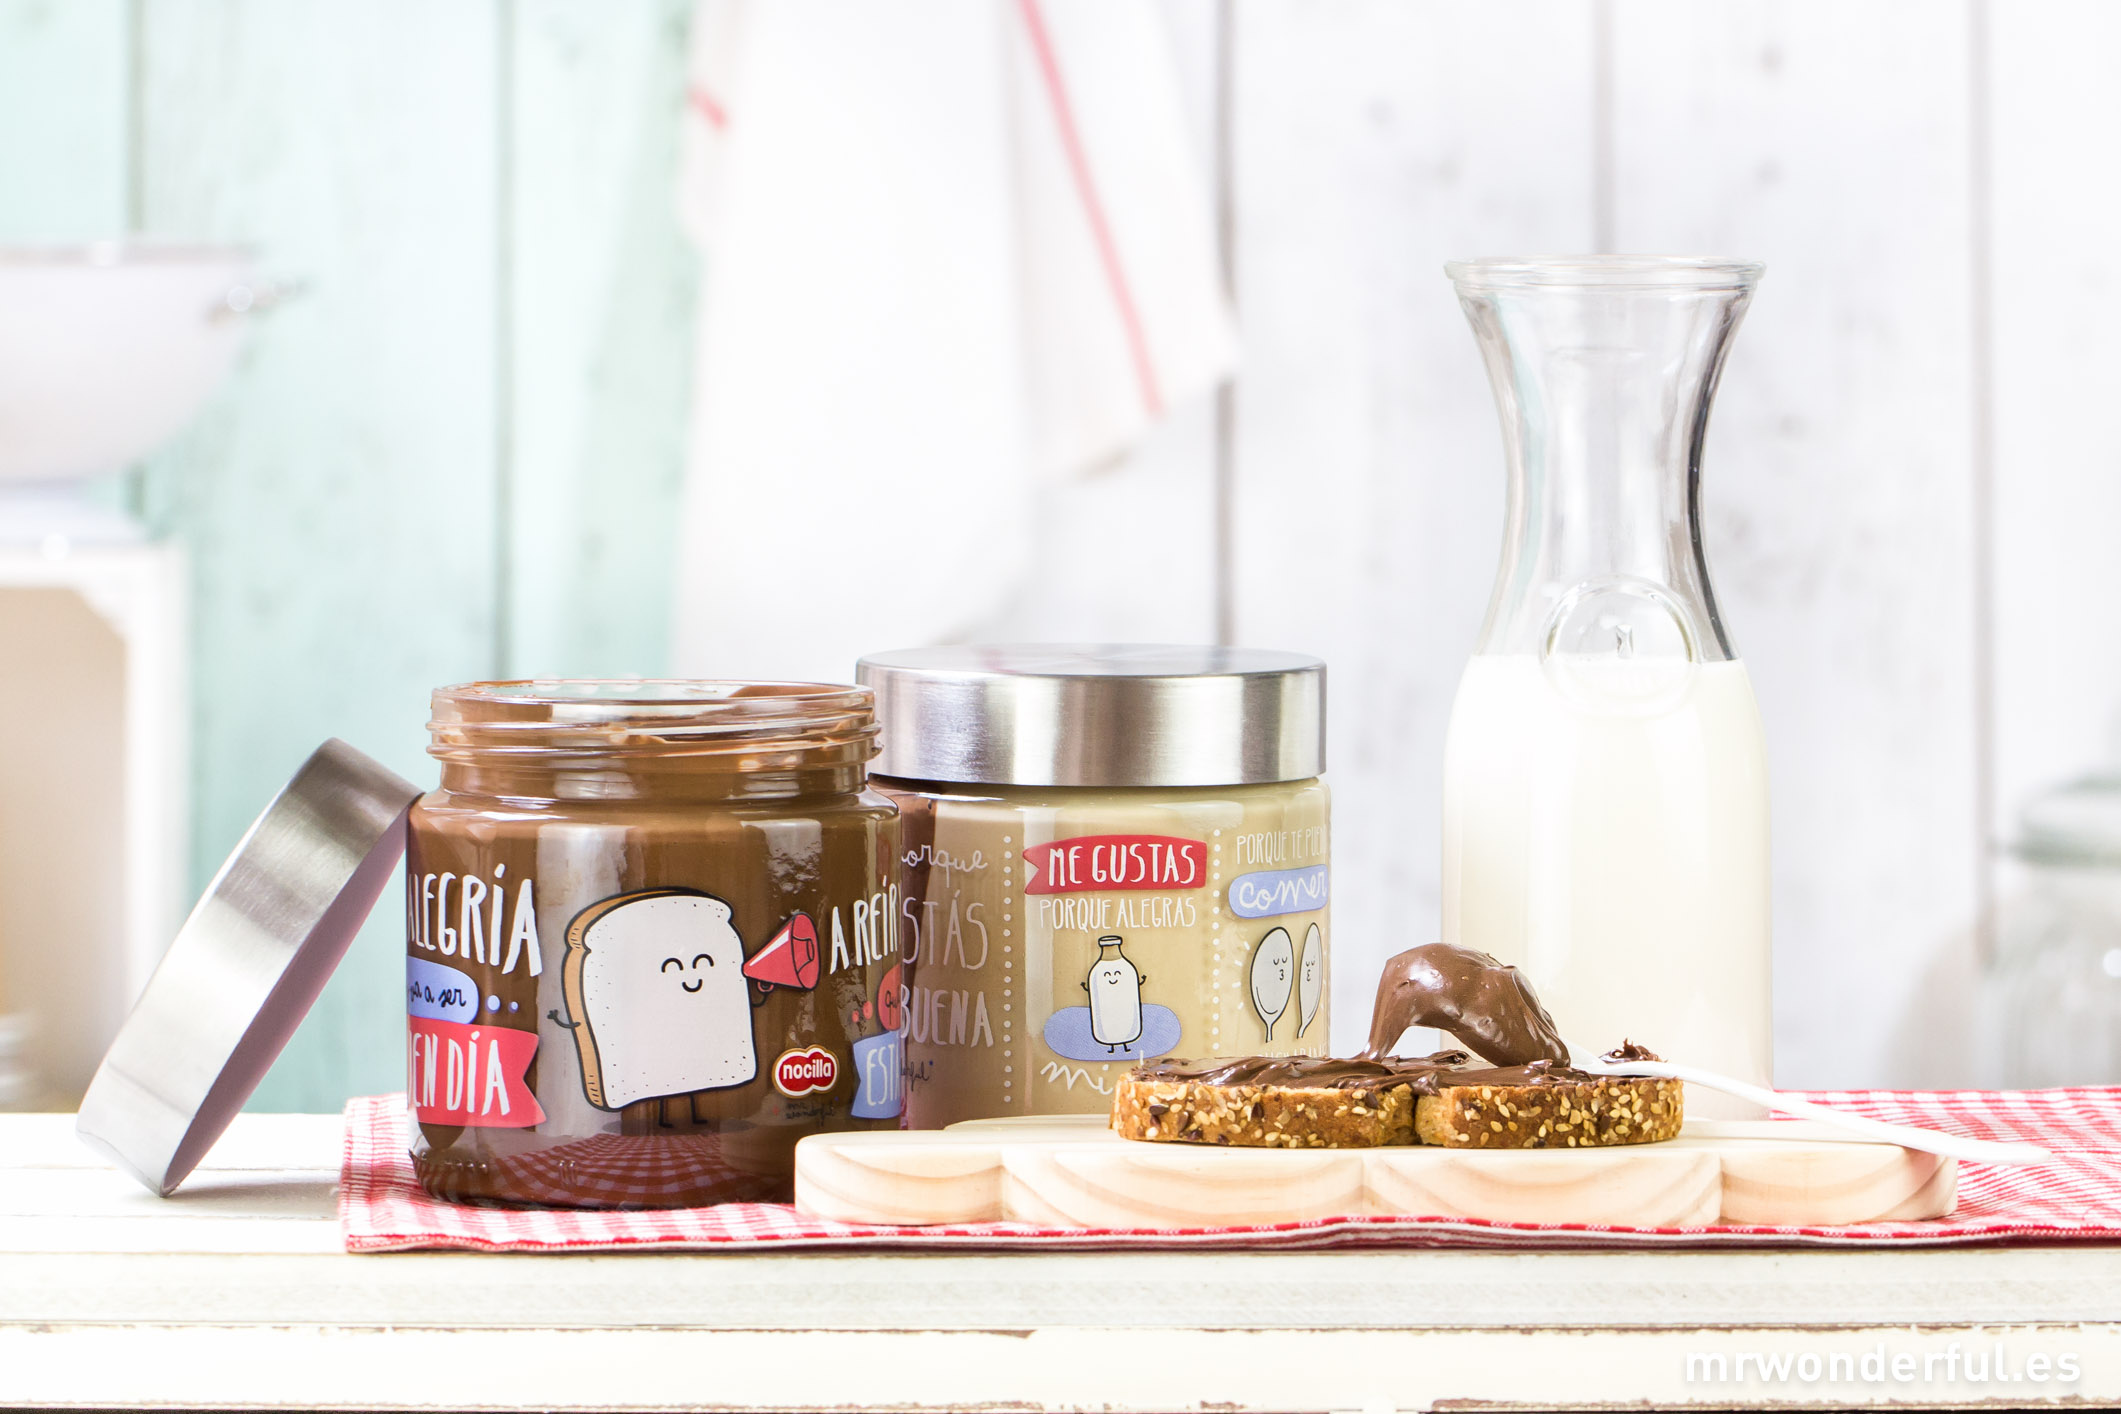 Leche cacao avellanas azcar y Mr Wonderful  muymolon